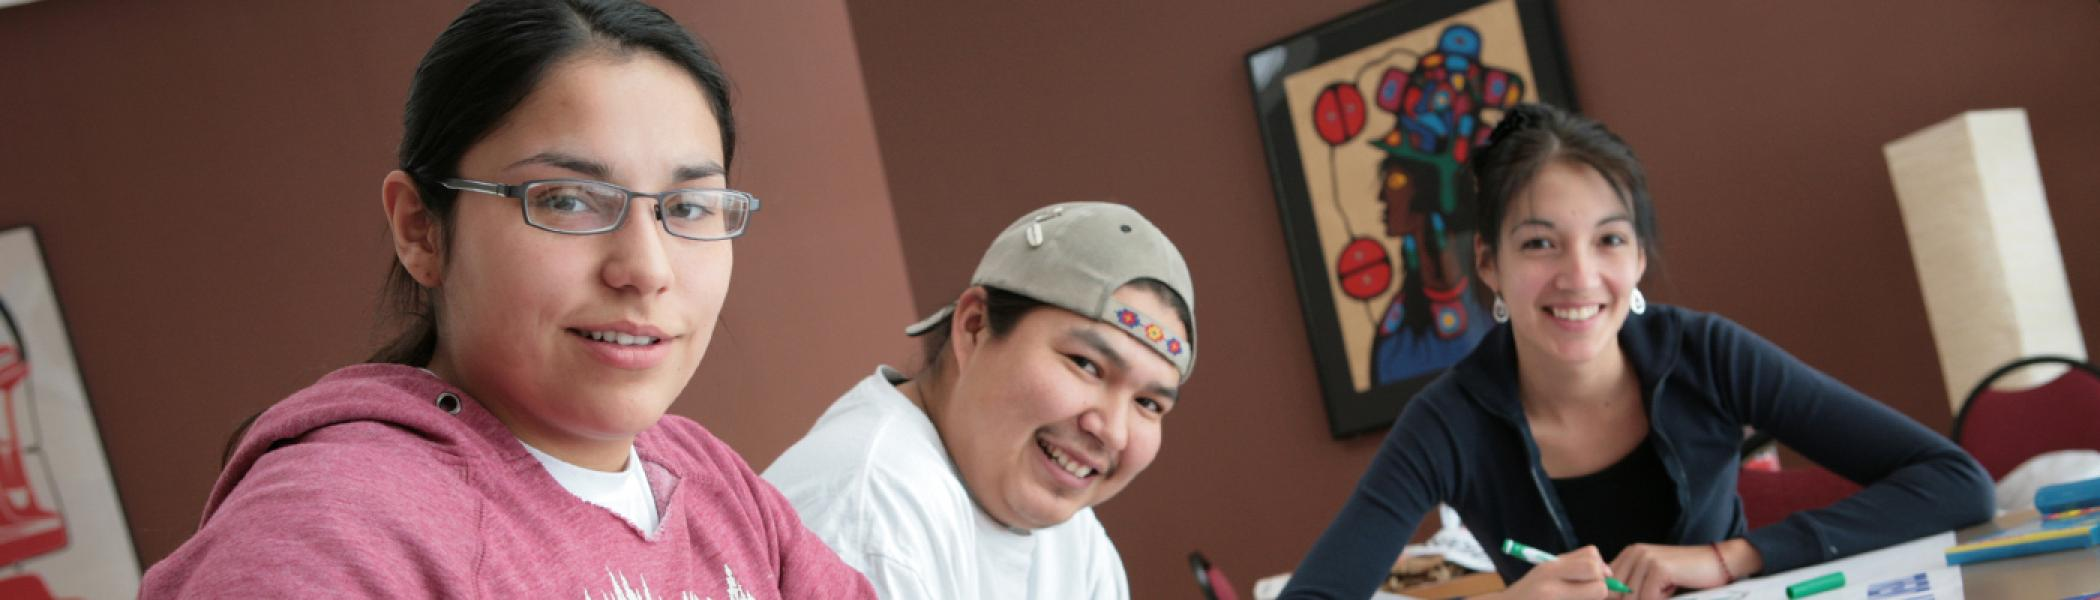 Indigenous students sitting at a project table in Gzowski College